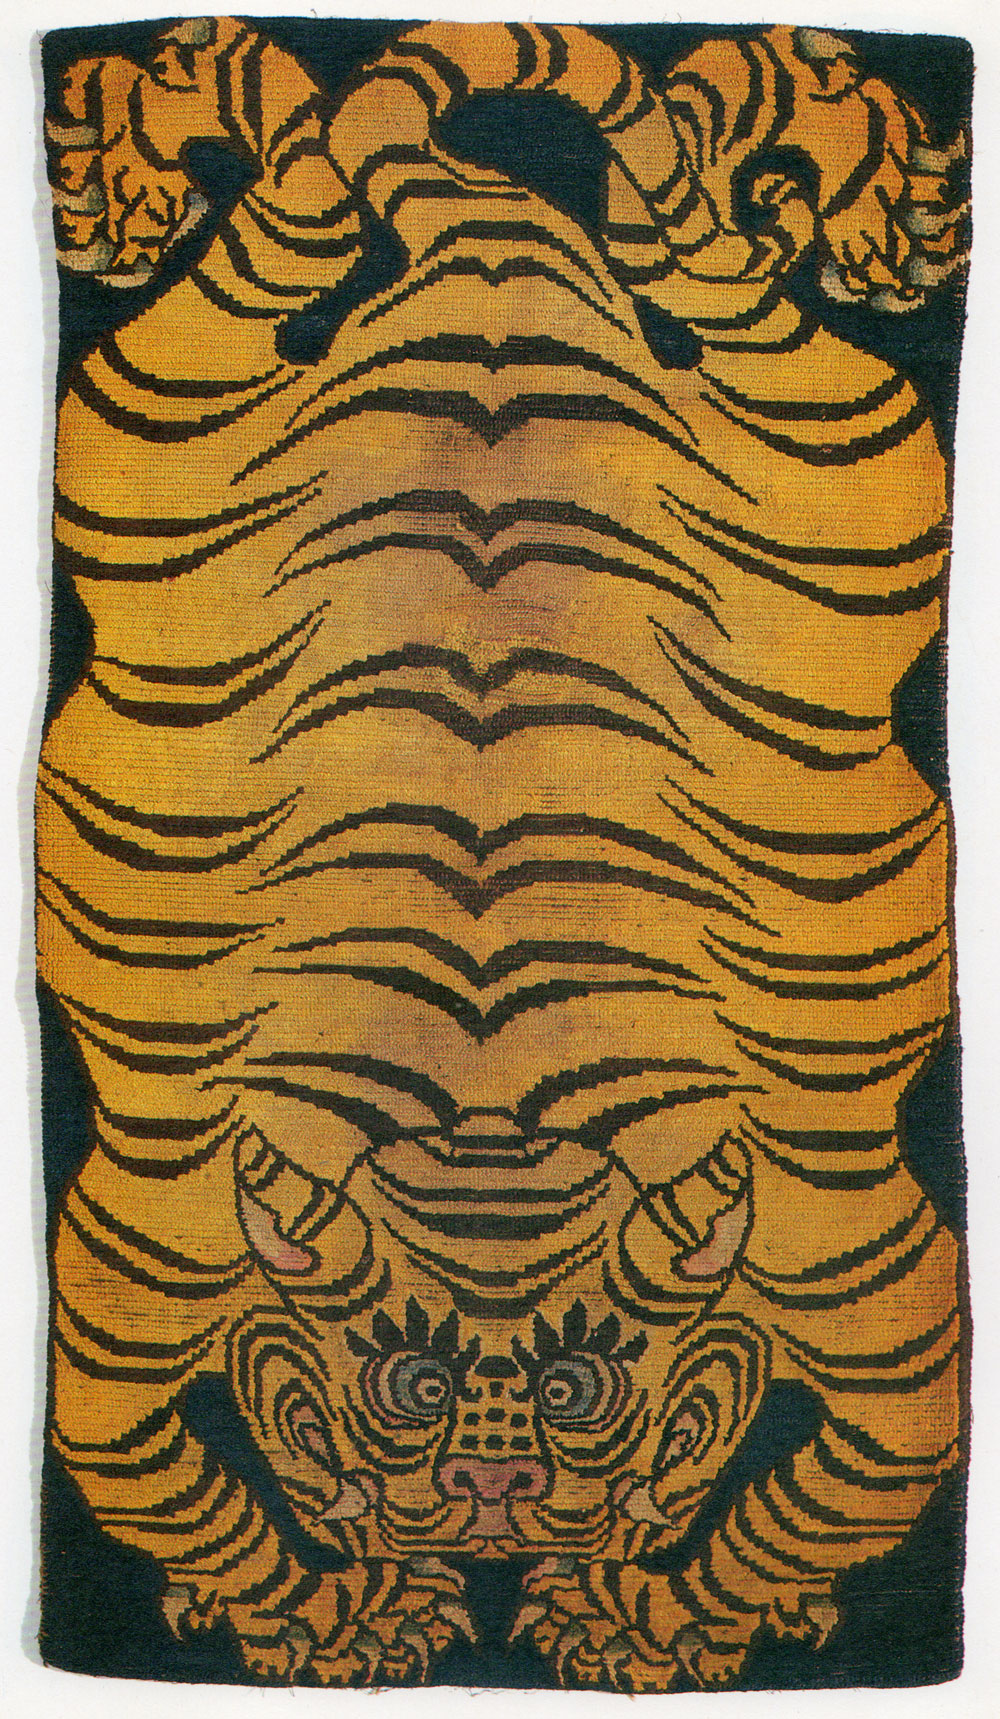 Antique Tibetan Tiger Rug. Private Collection